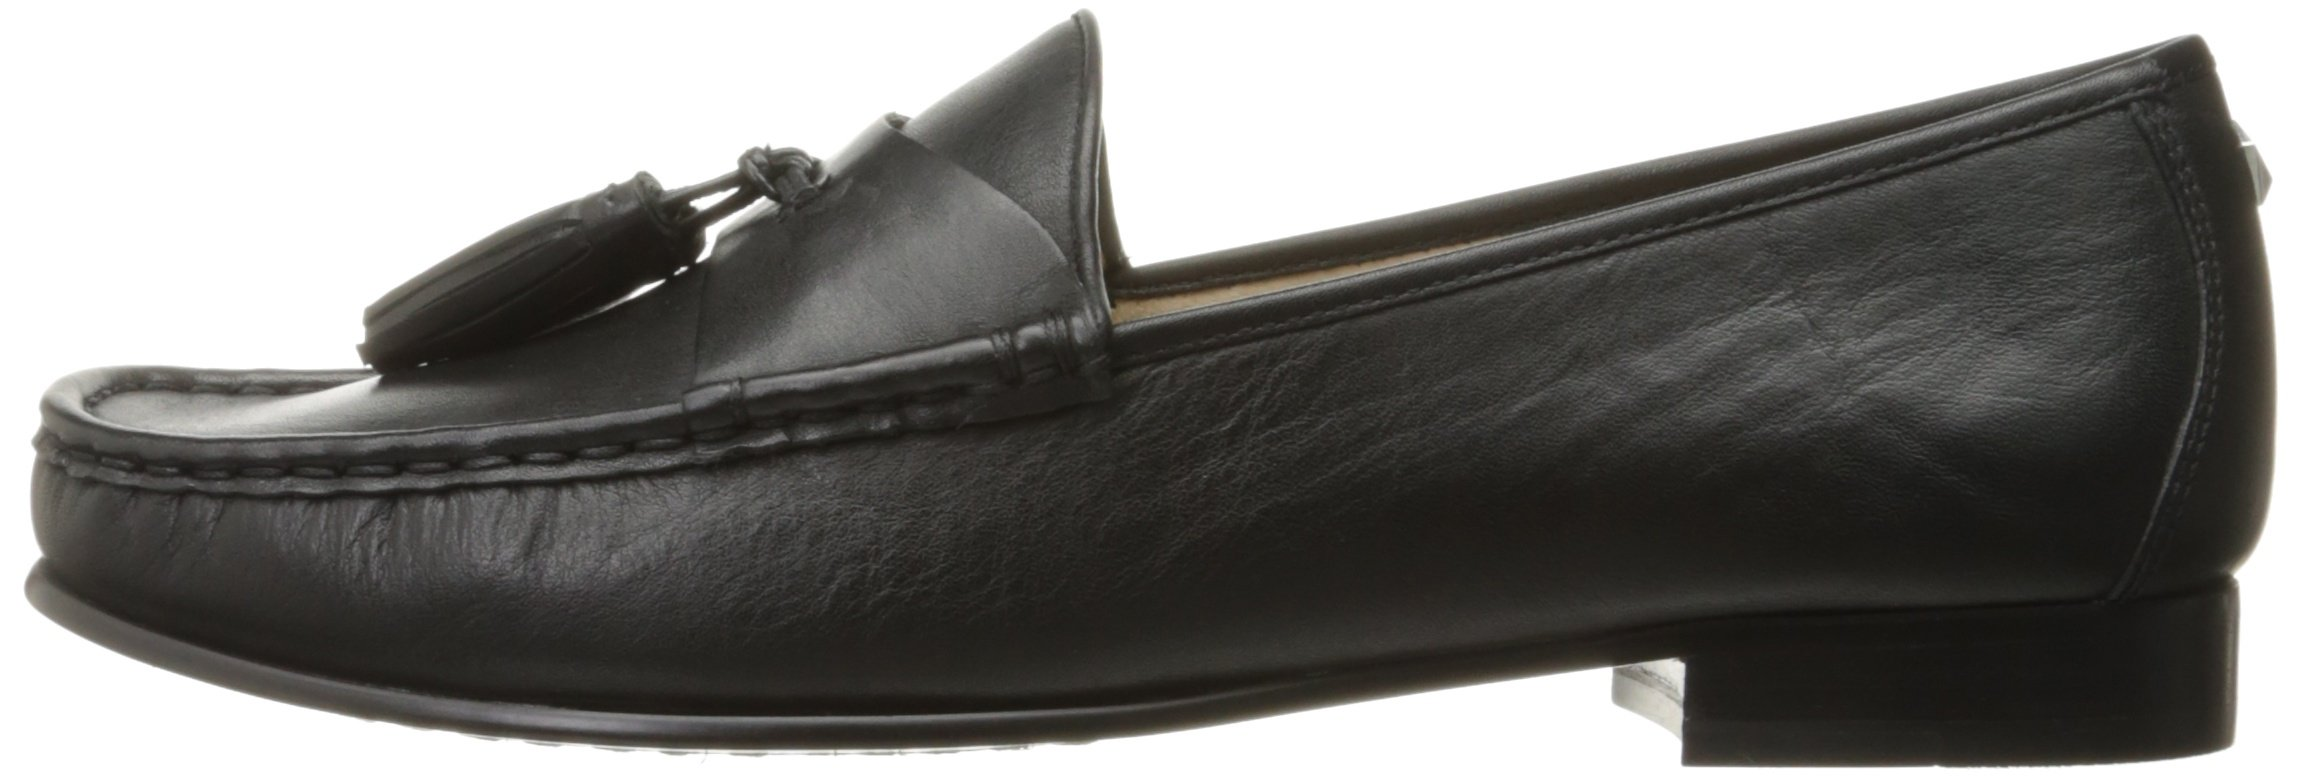 Sam Edelman Women's Therese Slip-On Loafer, Black, 7 M US by Sam Edelman (Image #5)